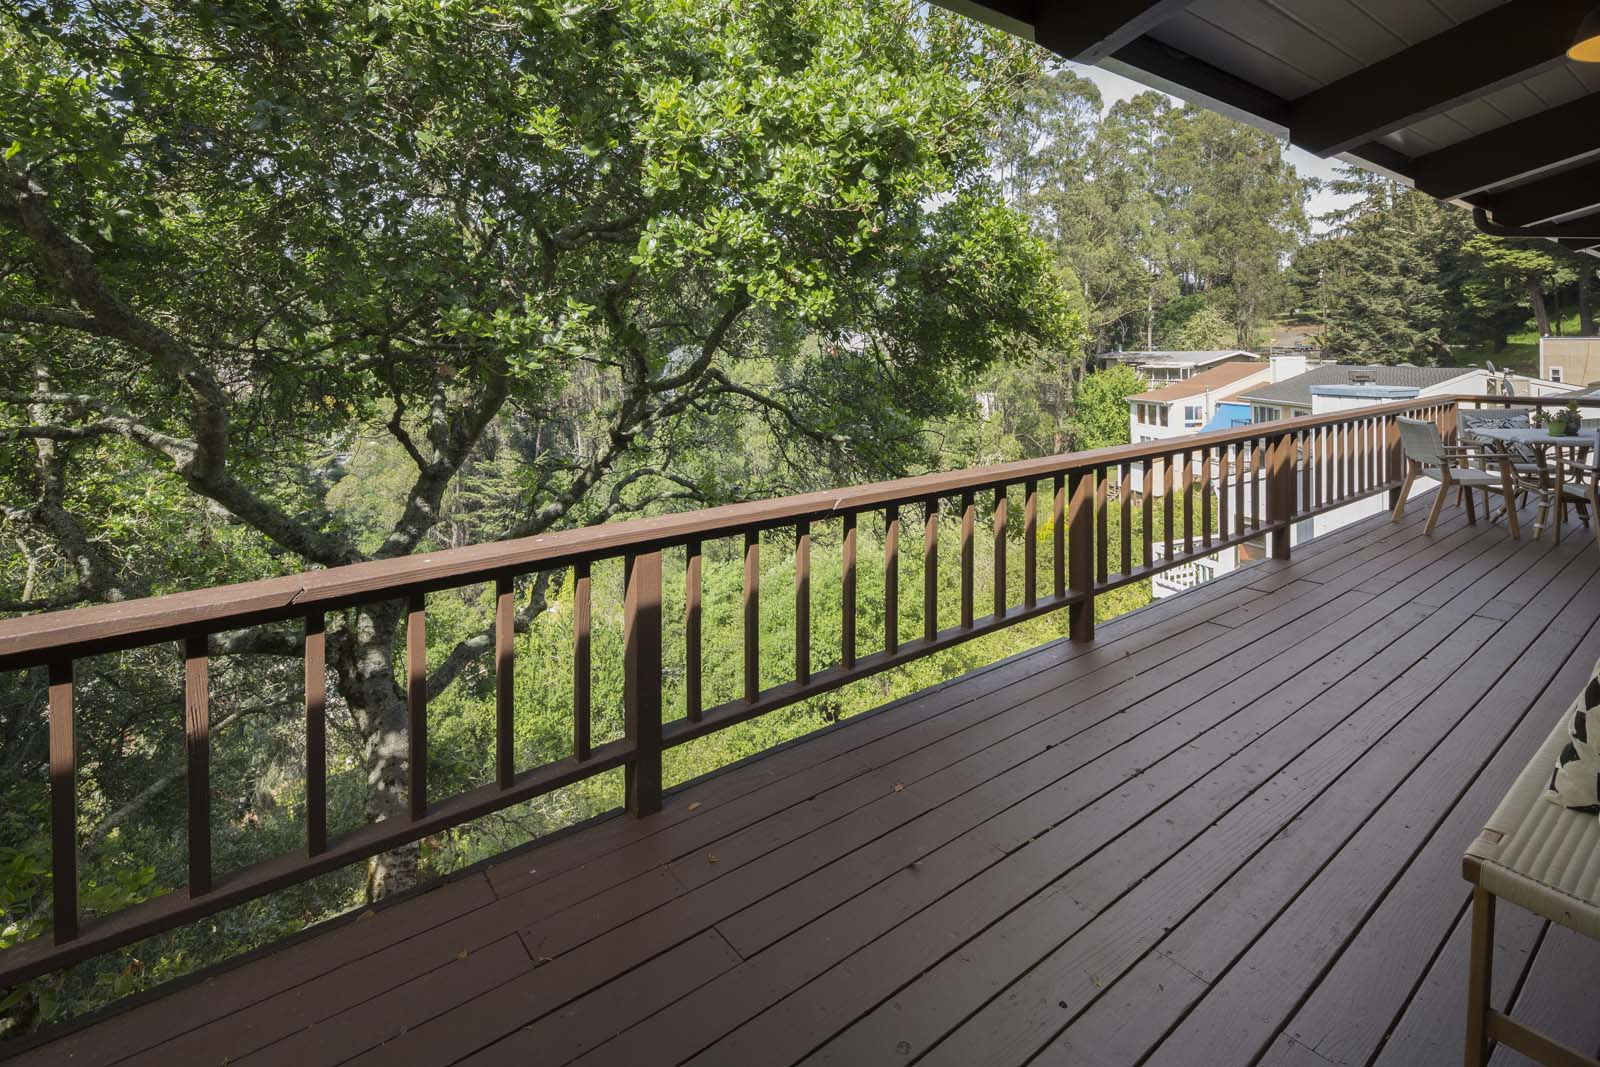 Patios & Decks: What Are the Differences?